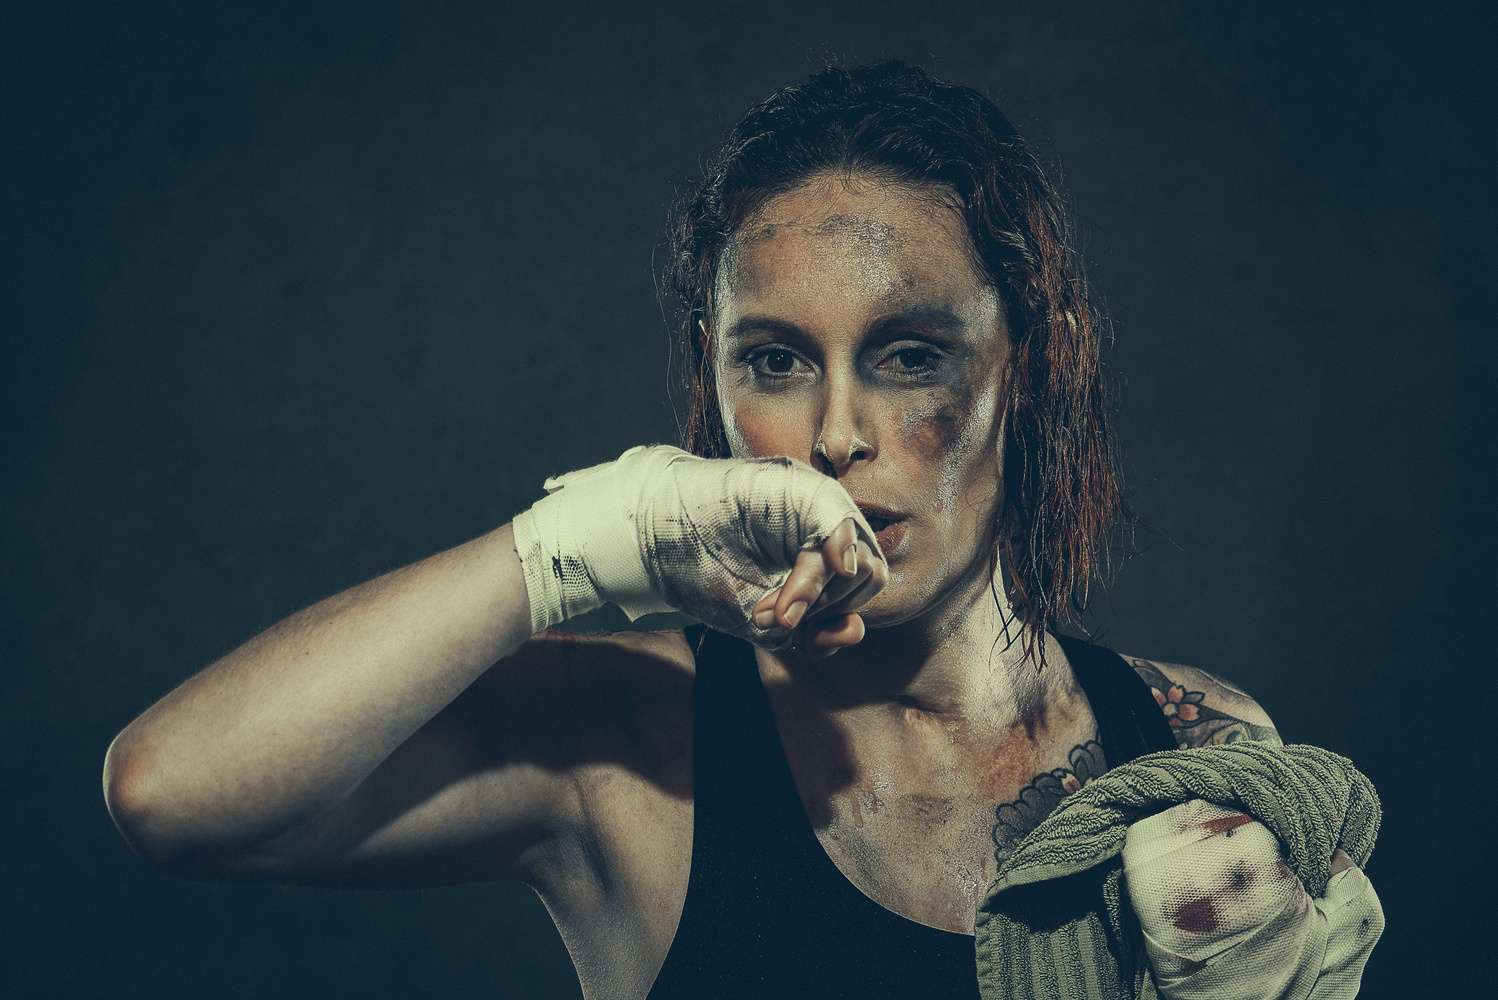 Boxe by Olivier Lannes